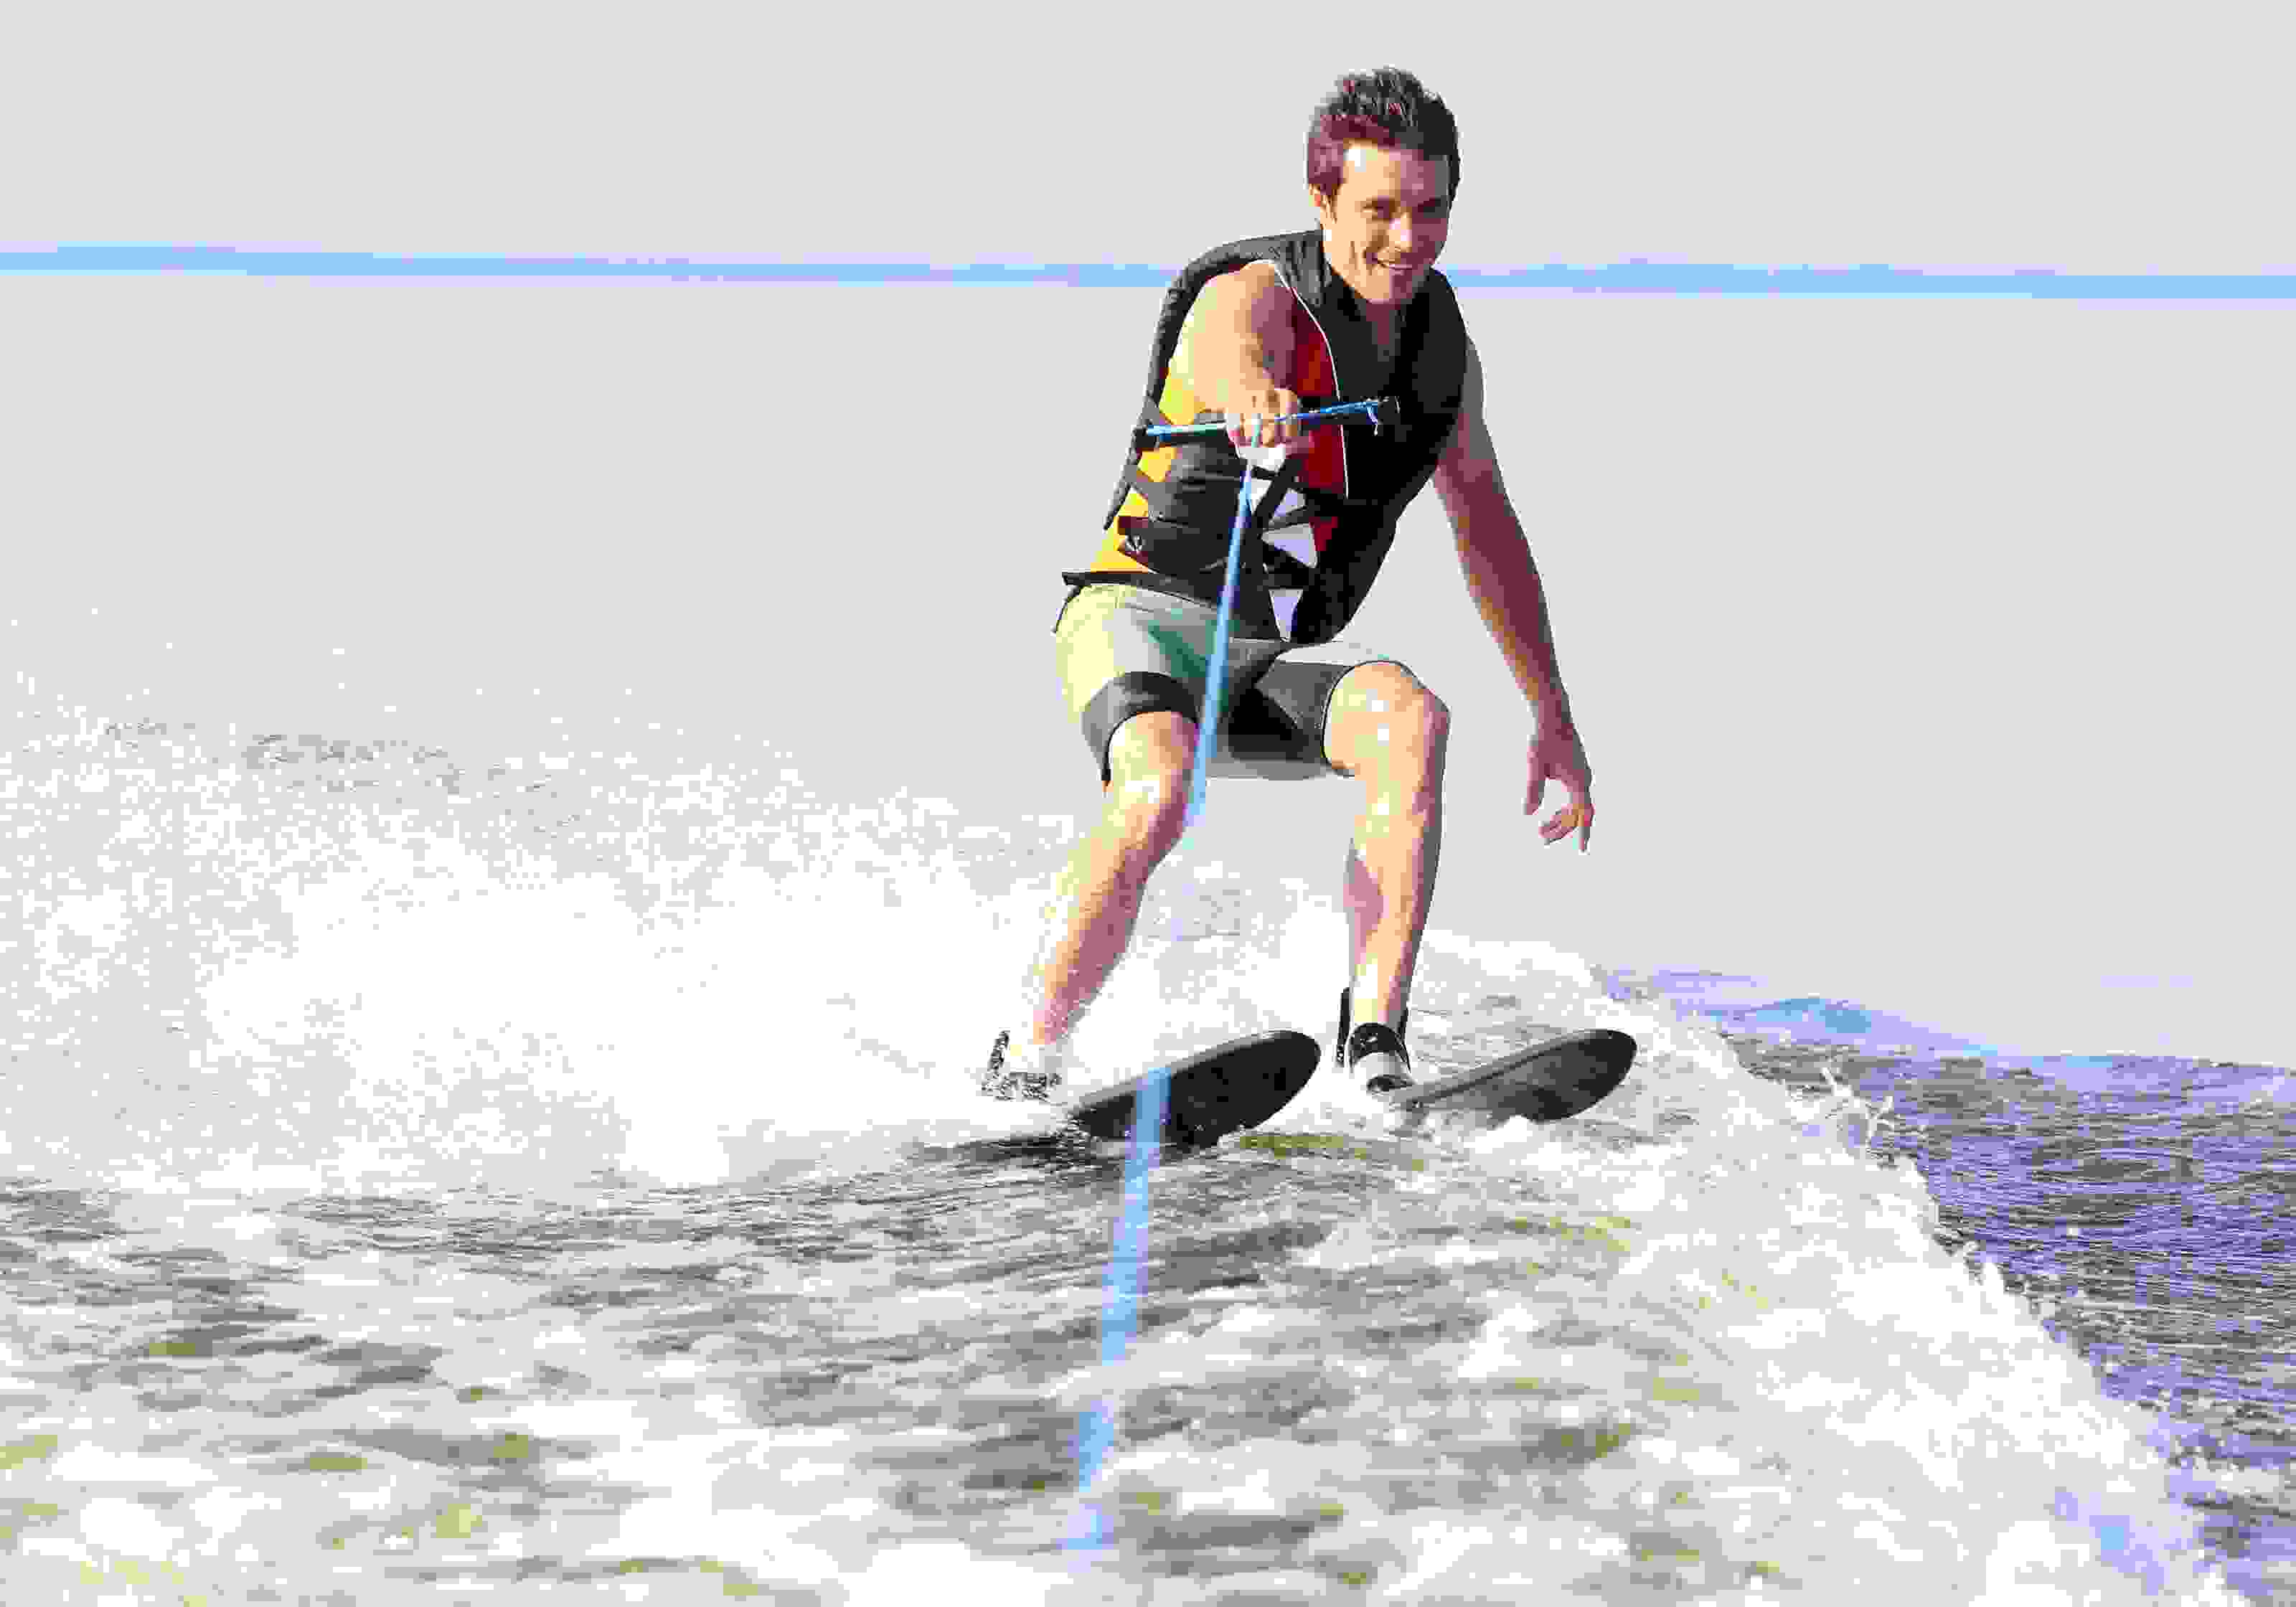 Invisible water skiing